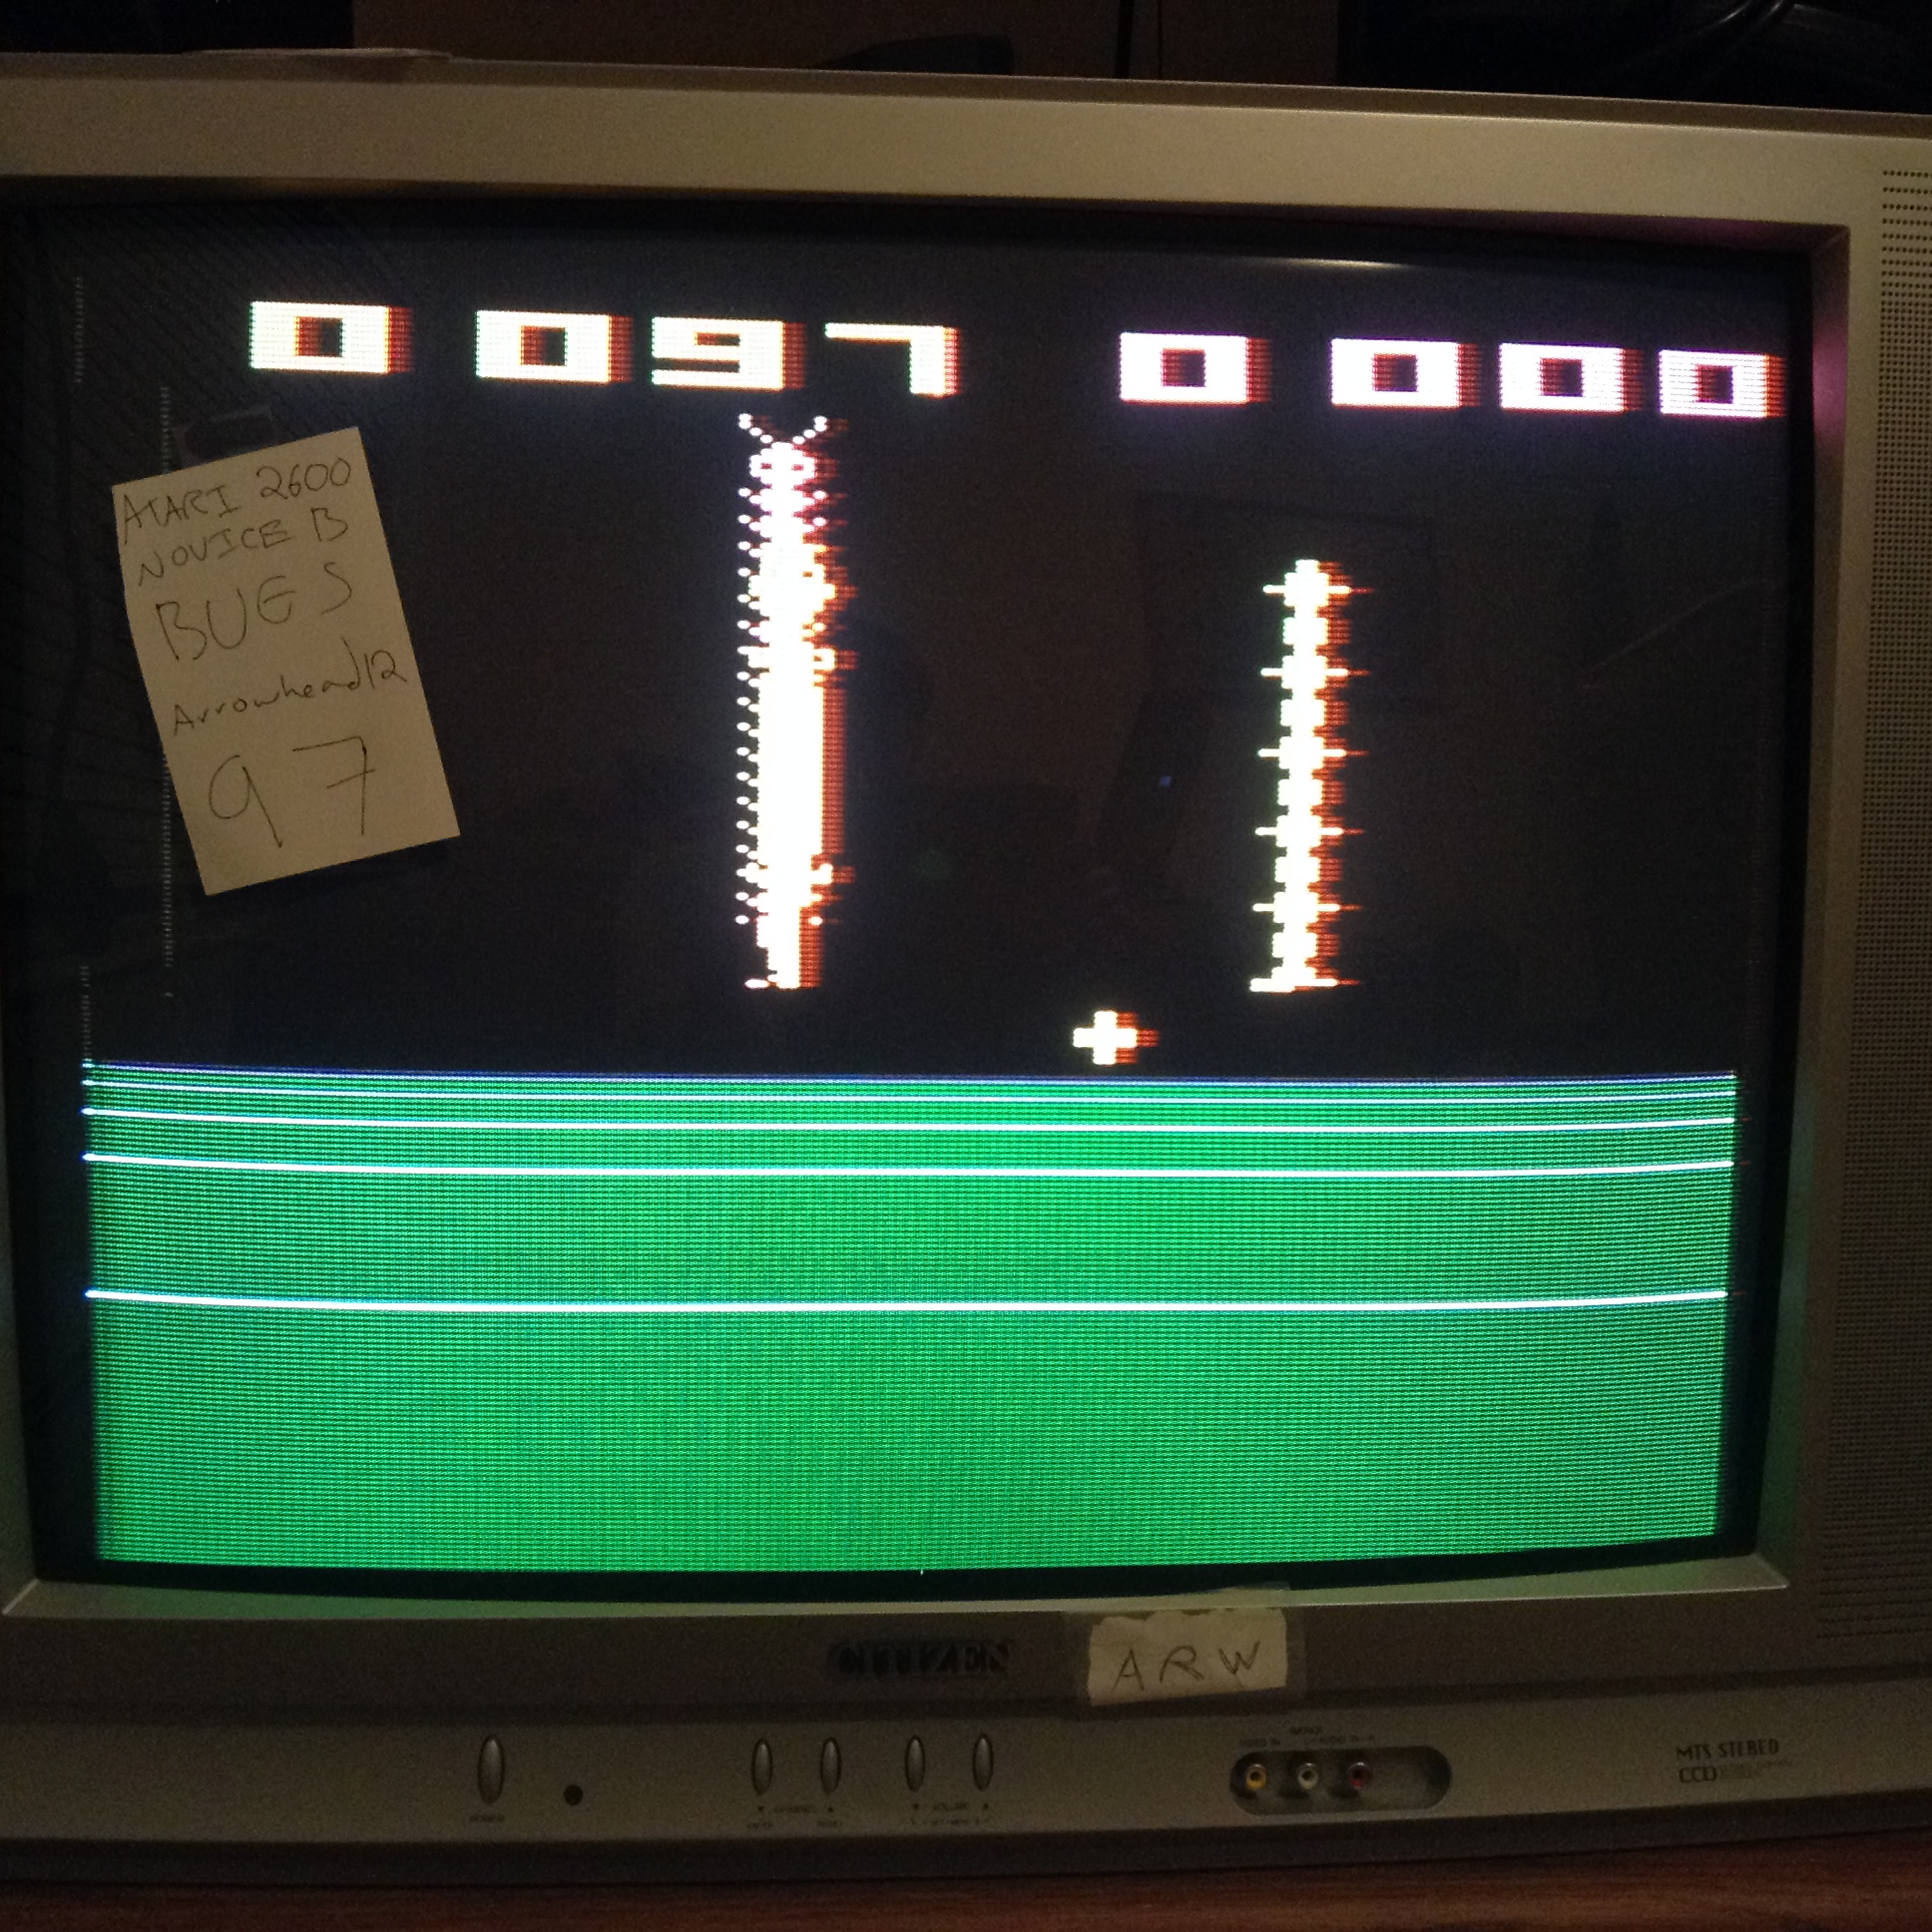 Arrowhead12: Bugs (Atari 2600 Novice/B) 97 points on 2018-11-18 01:52:10